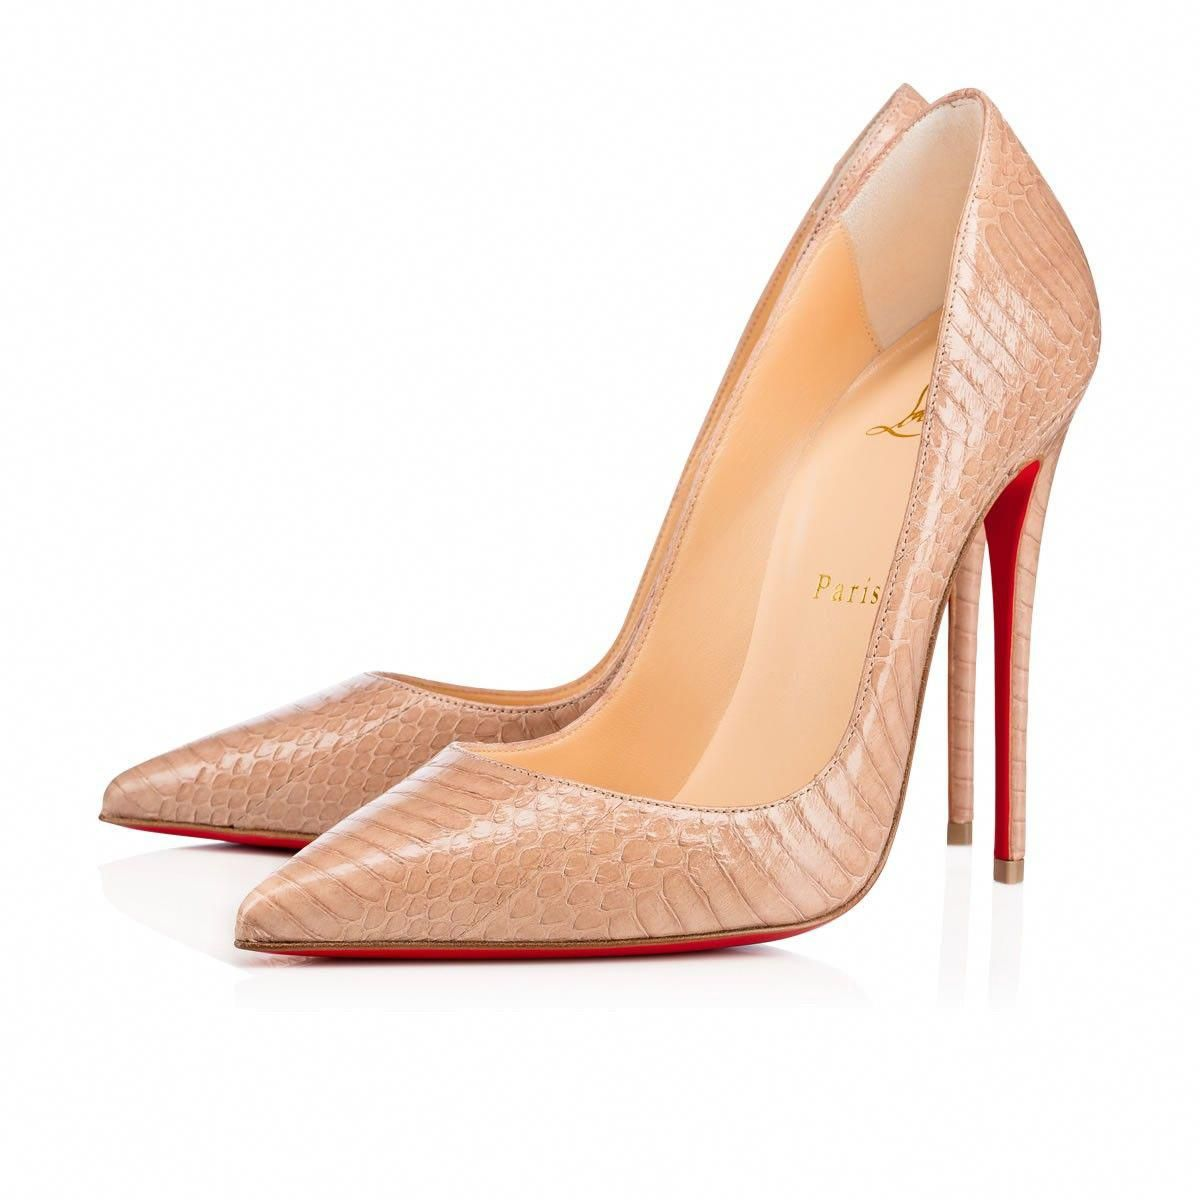 217d8f955 CHRISTIAN LOUBOUTIN So Kate 120 Nude Watersnake - Women Shoes - Christian  Louboutin. #christianlouboutin #shoes #